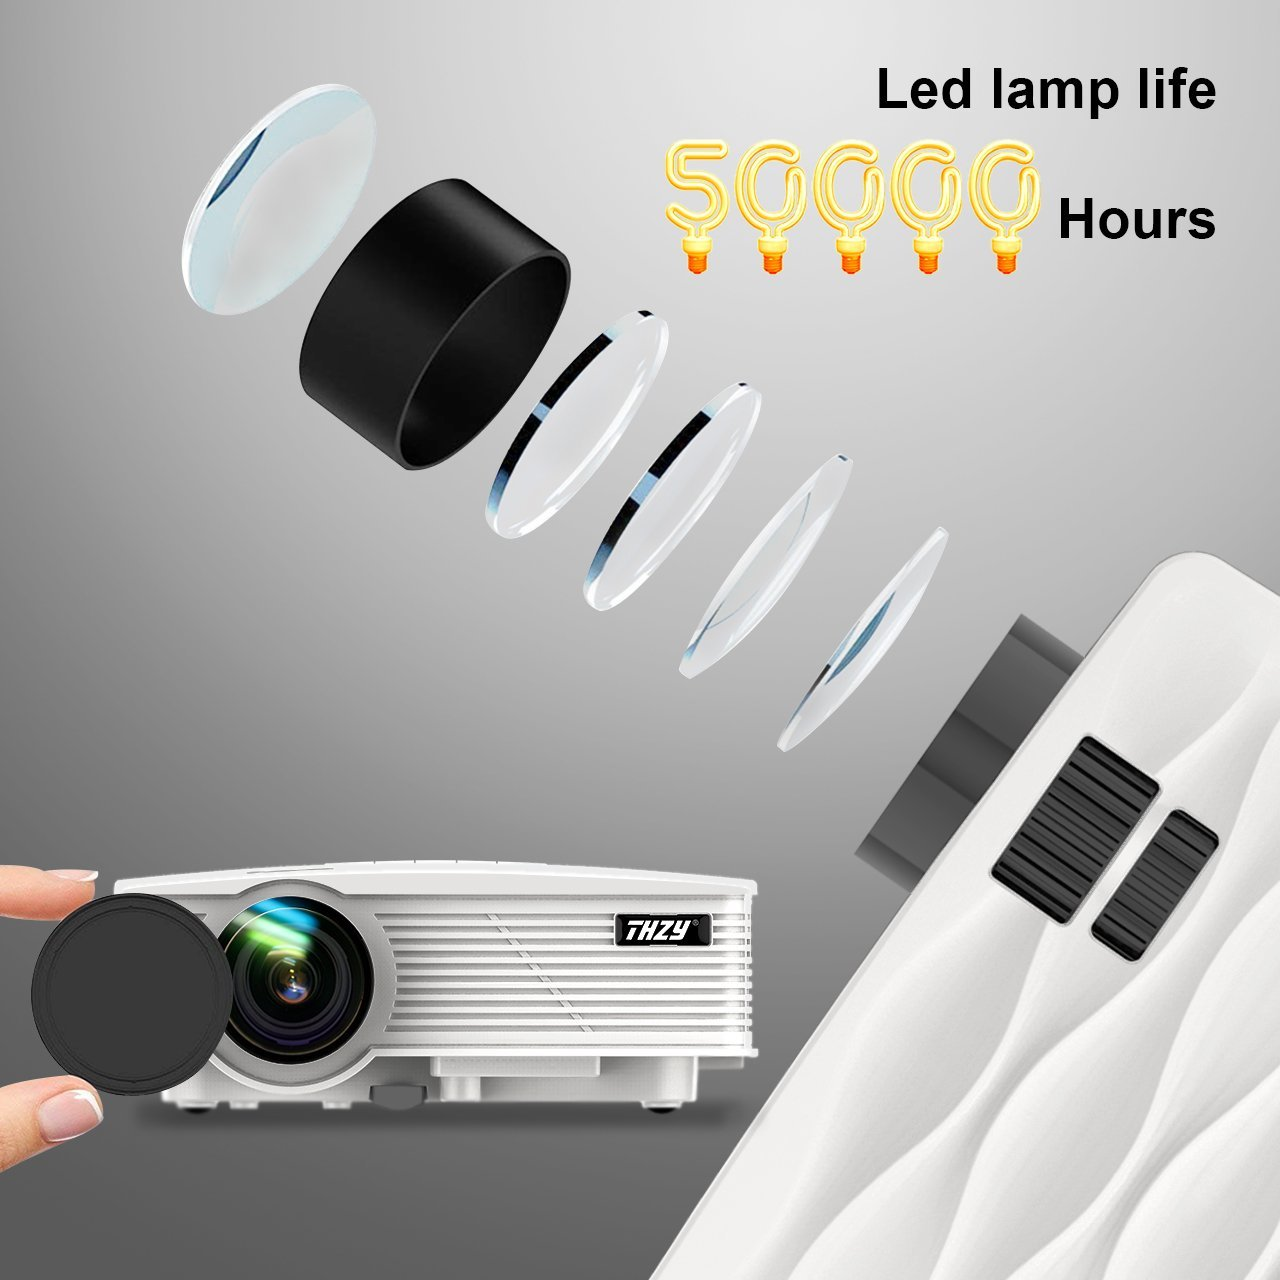 THZY Mini Projector 2200 Lumens Portable Video Projector,50000 Hours Multimedia Home Theater Movie Projector 1080P Support,Compatible with Amazon Fire TV Stick HDMI,VGA,USB,AV,Laptop,Smartphone by THZY (Image #7)